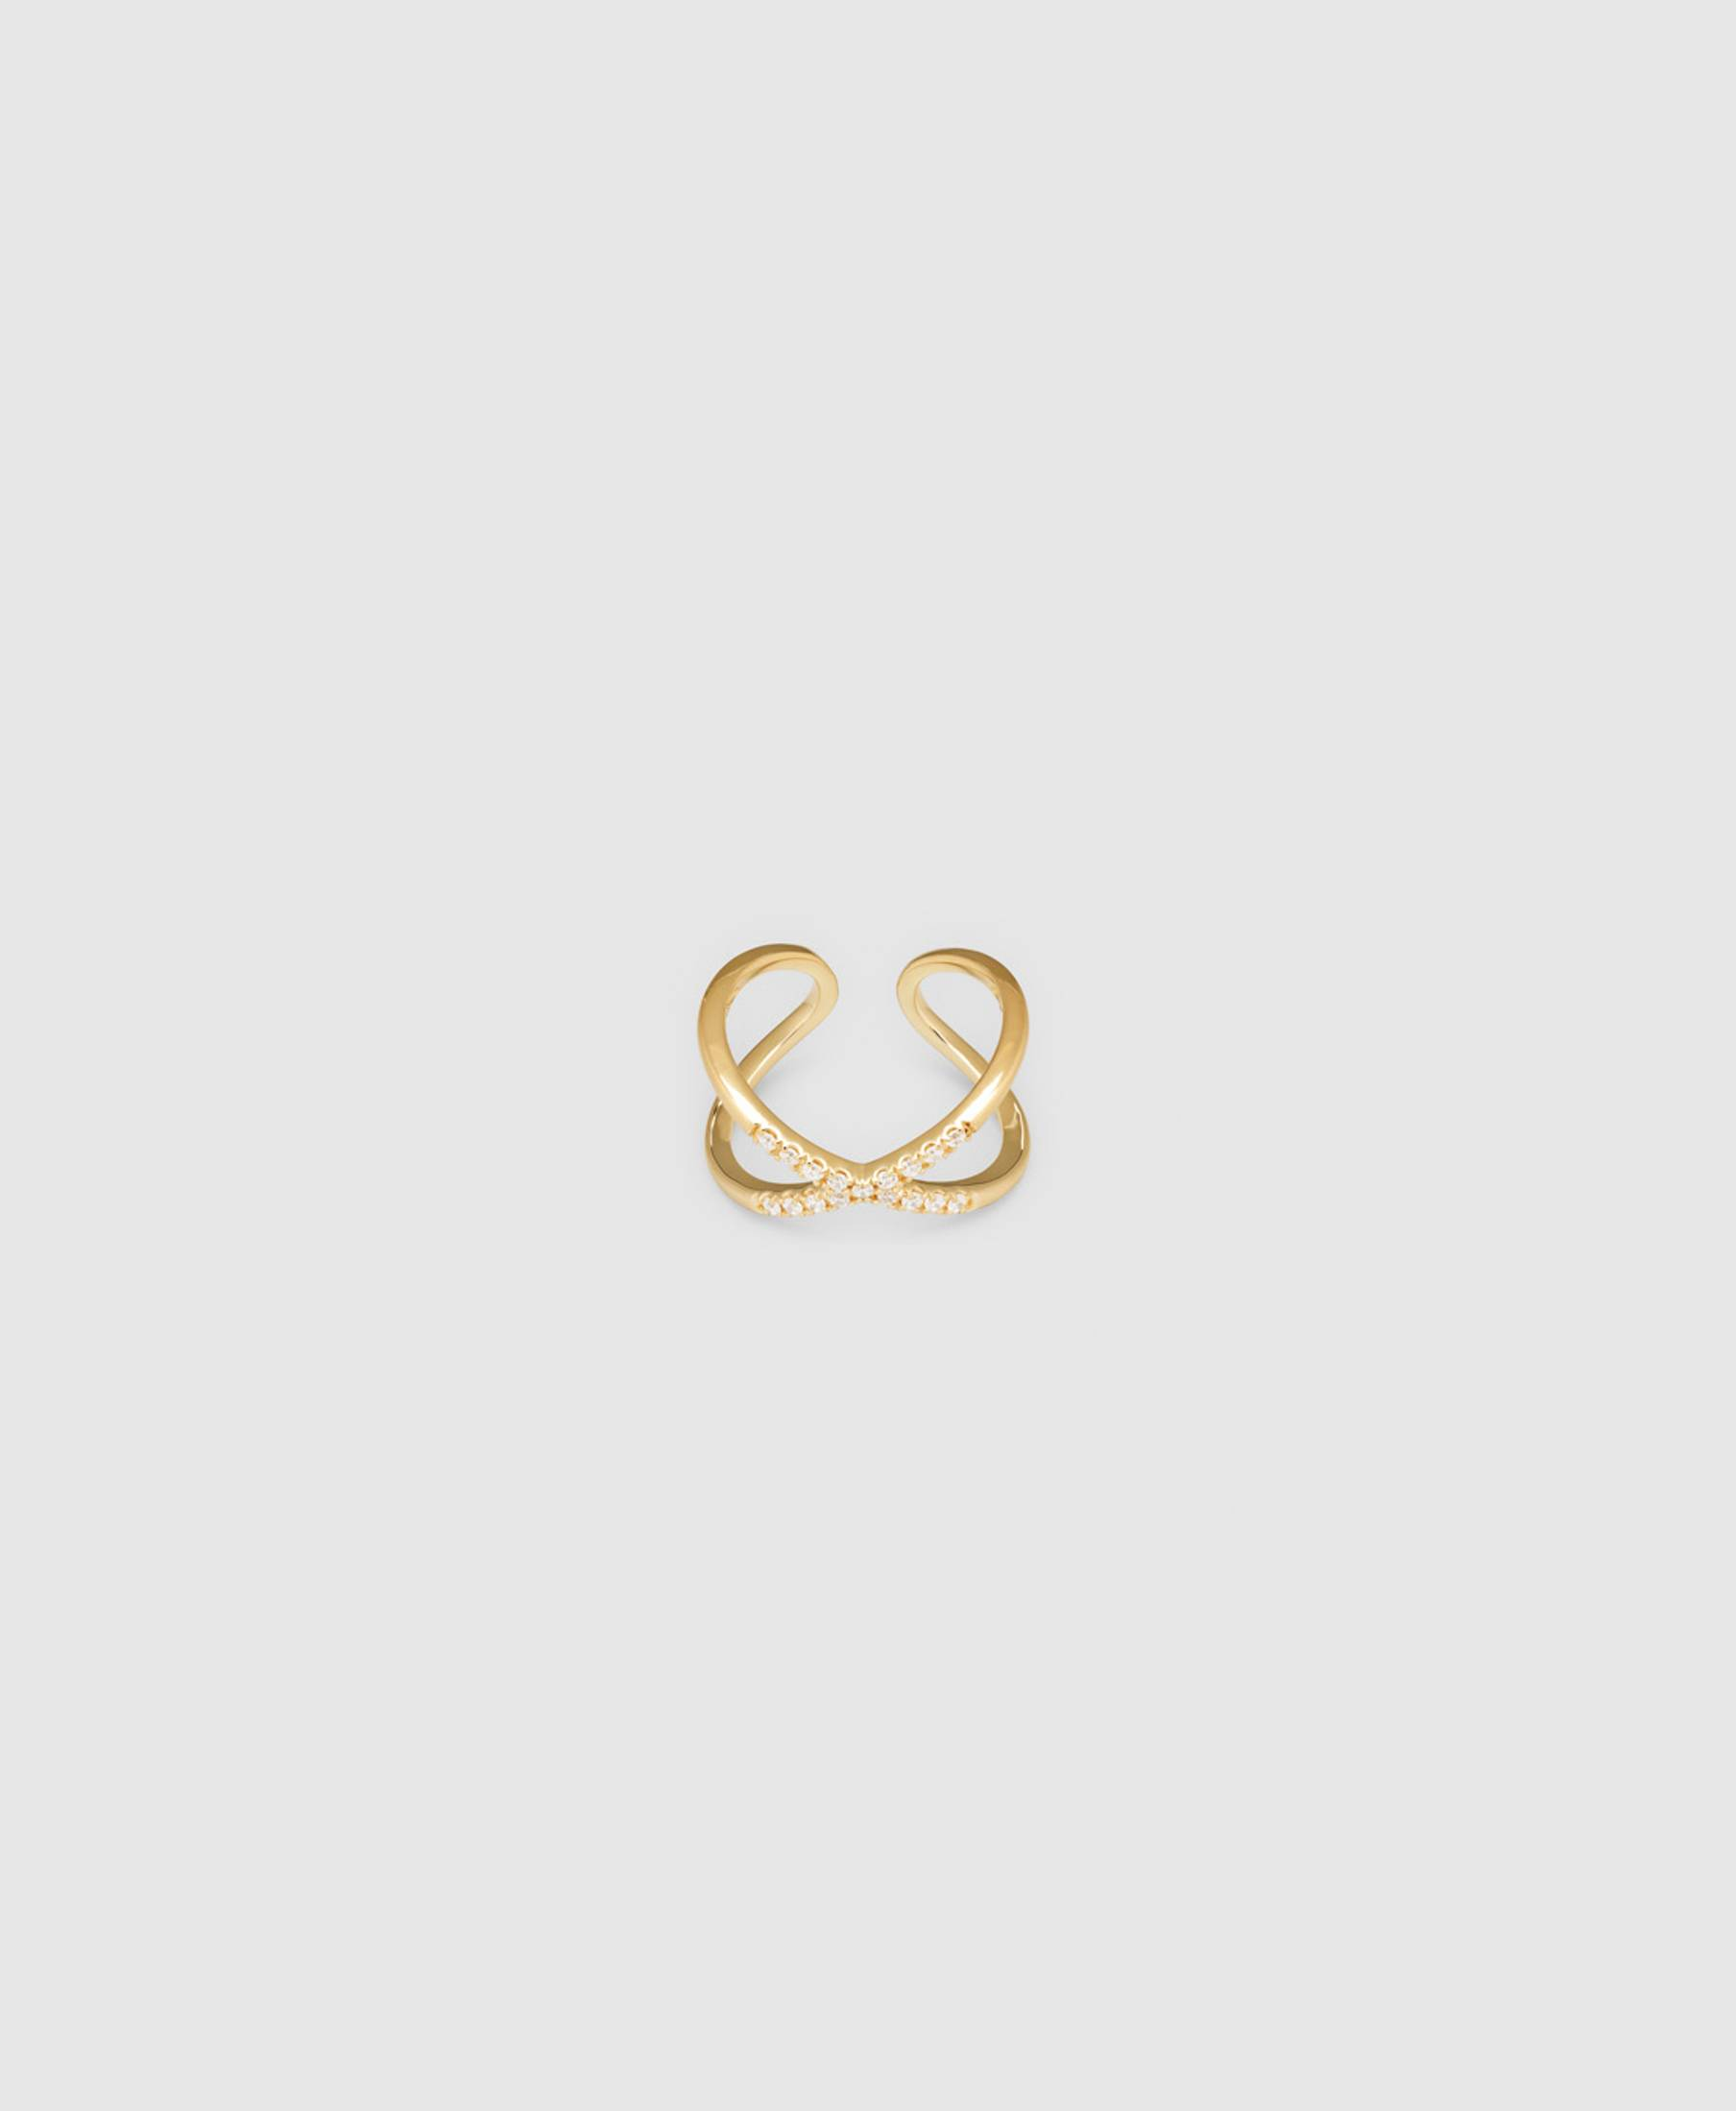 X Ring Zirconia Gold